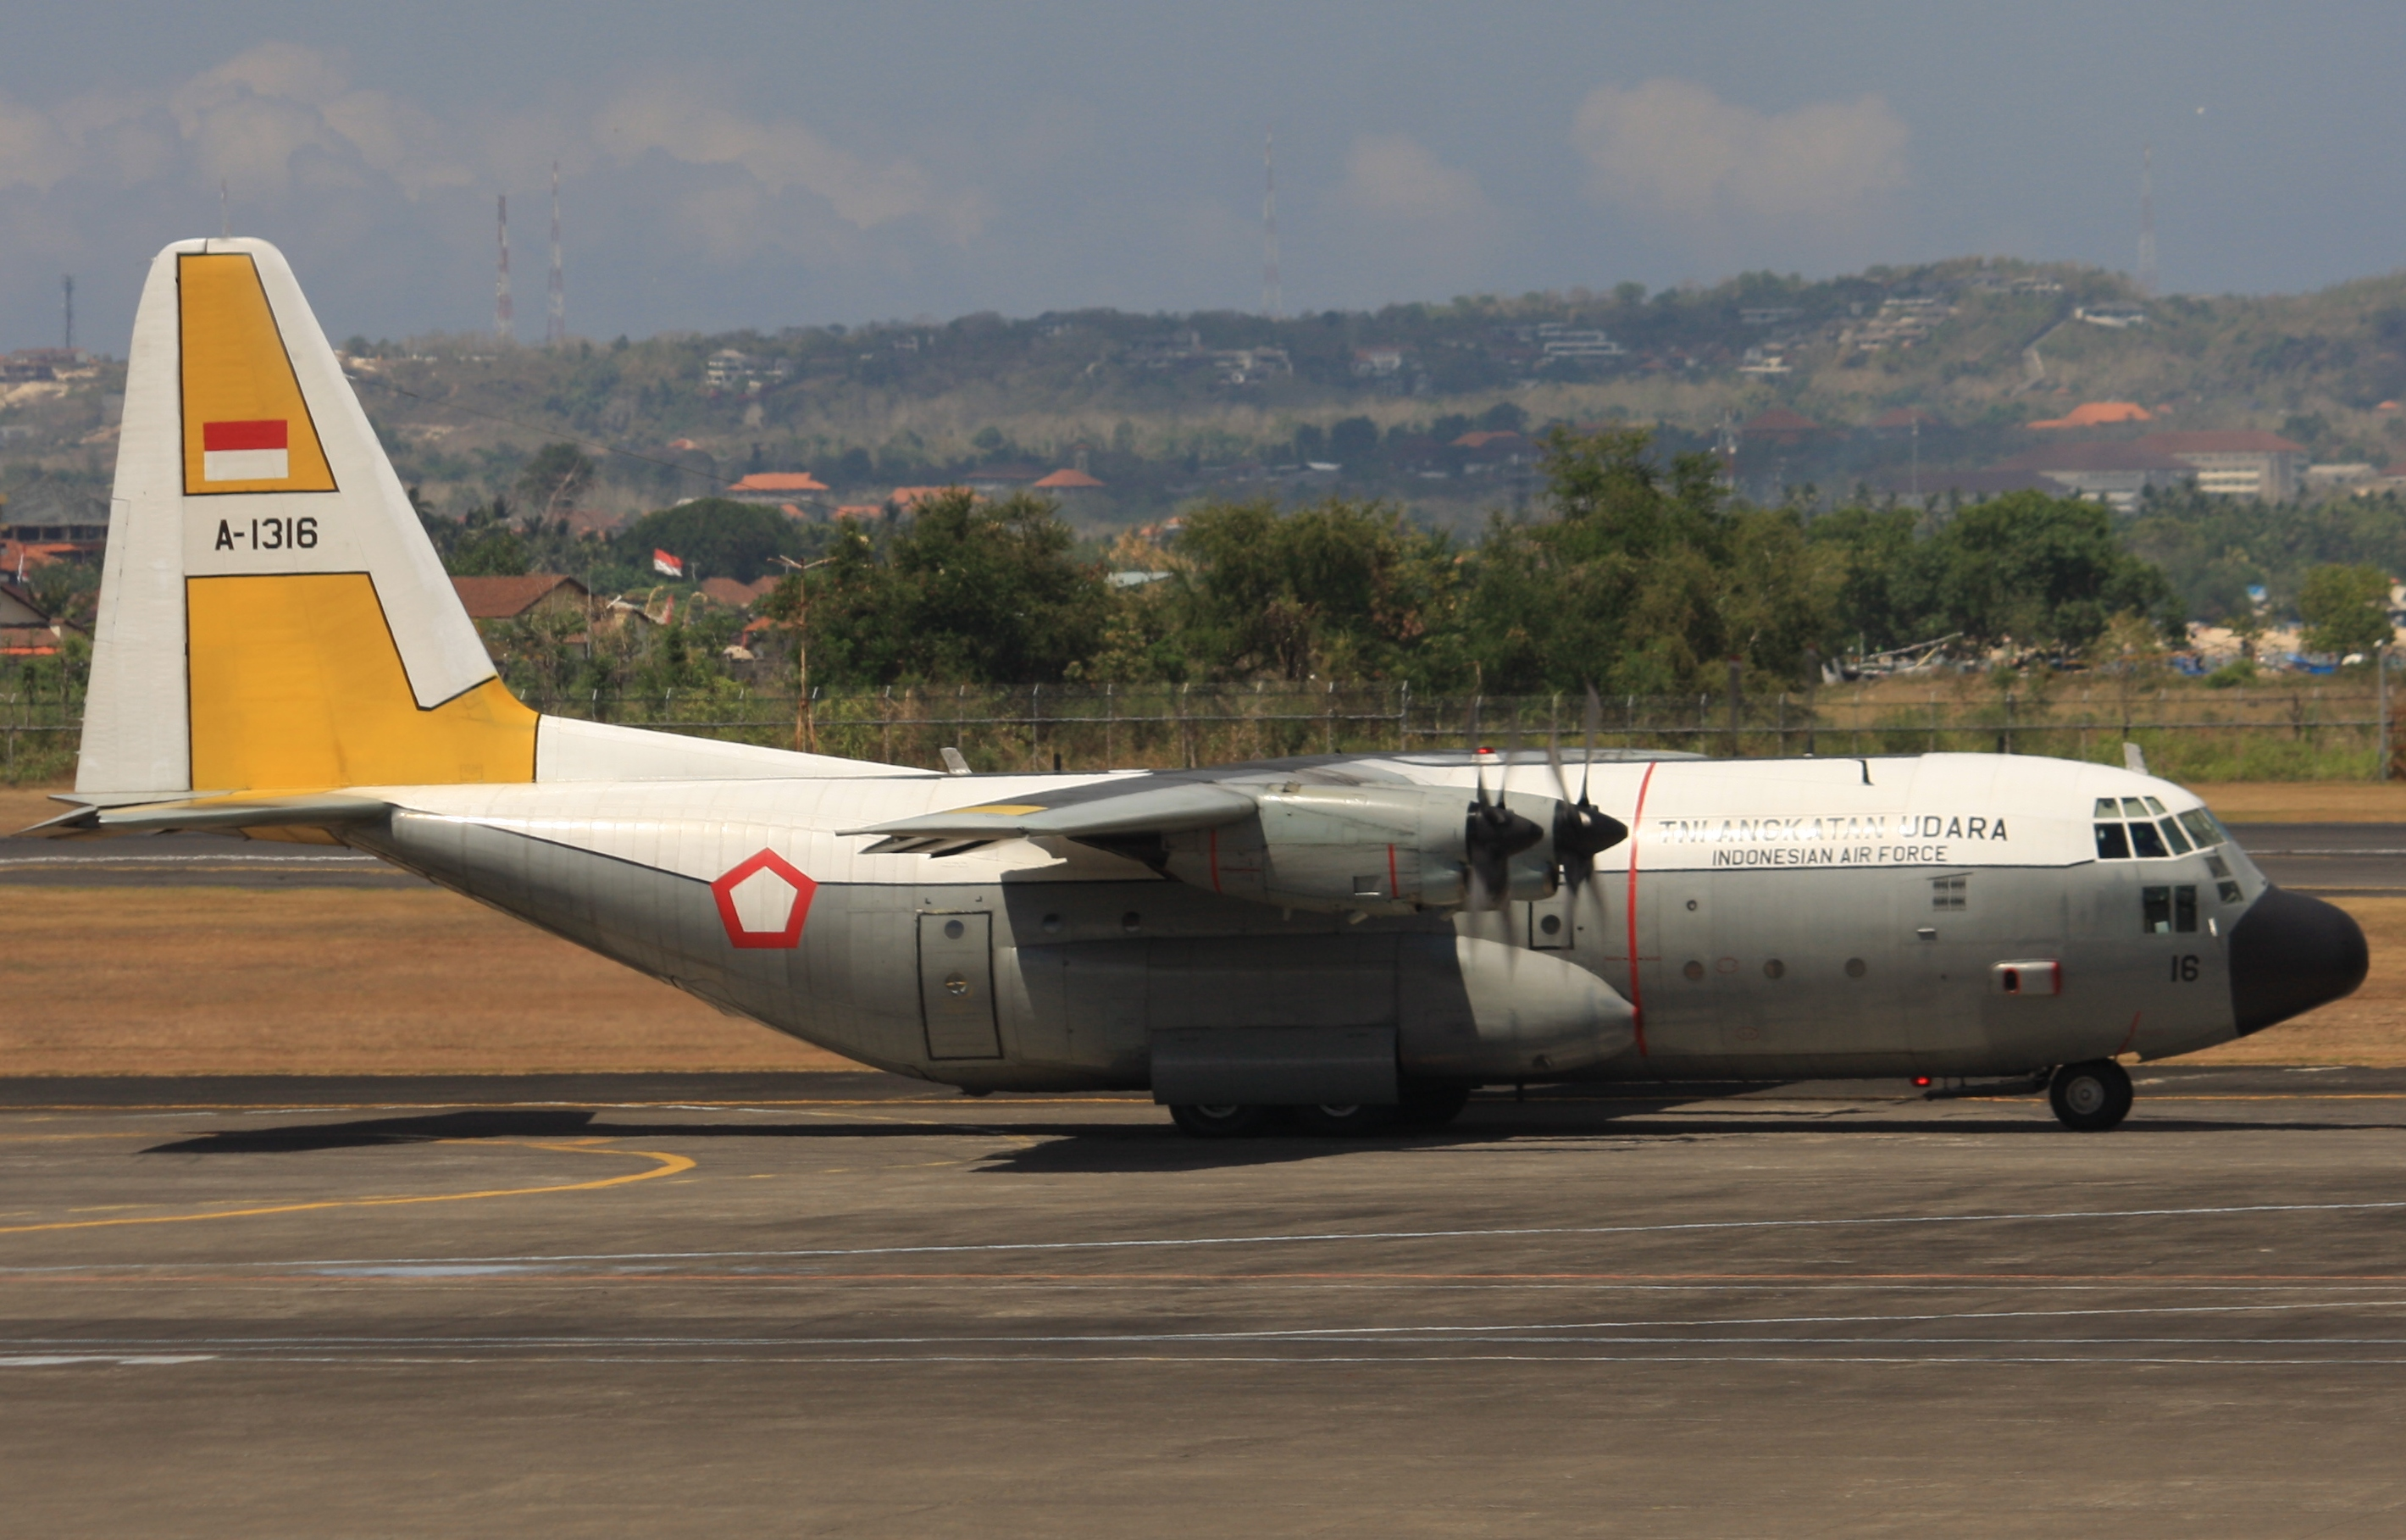 File:A-1316 Lockheed C-130H Hercules (cn 4840) Indonesian Air